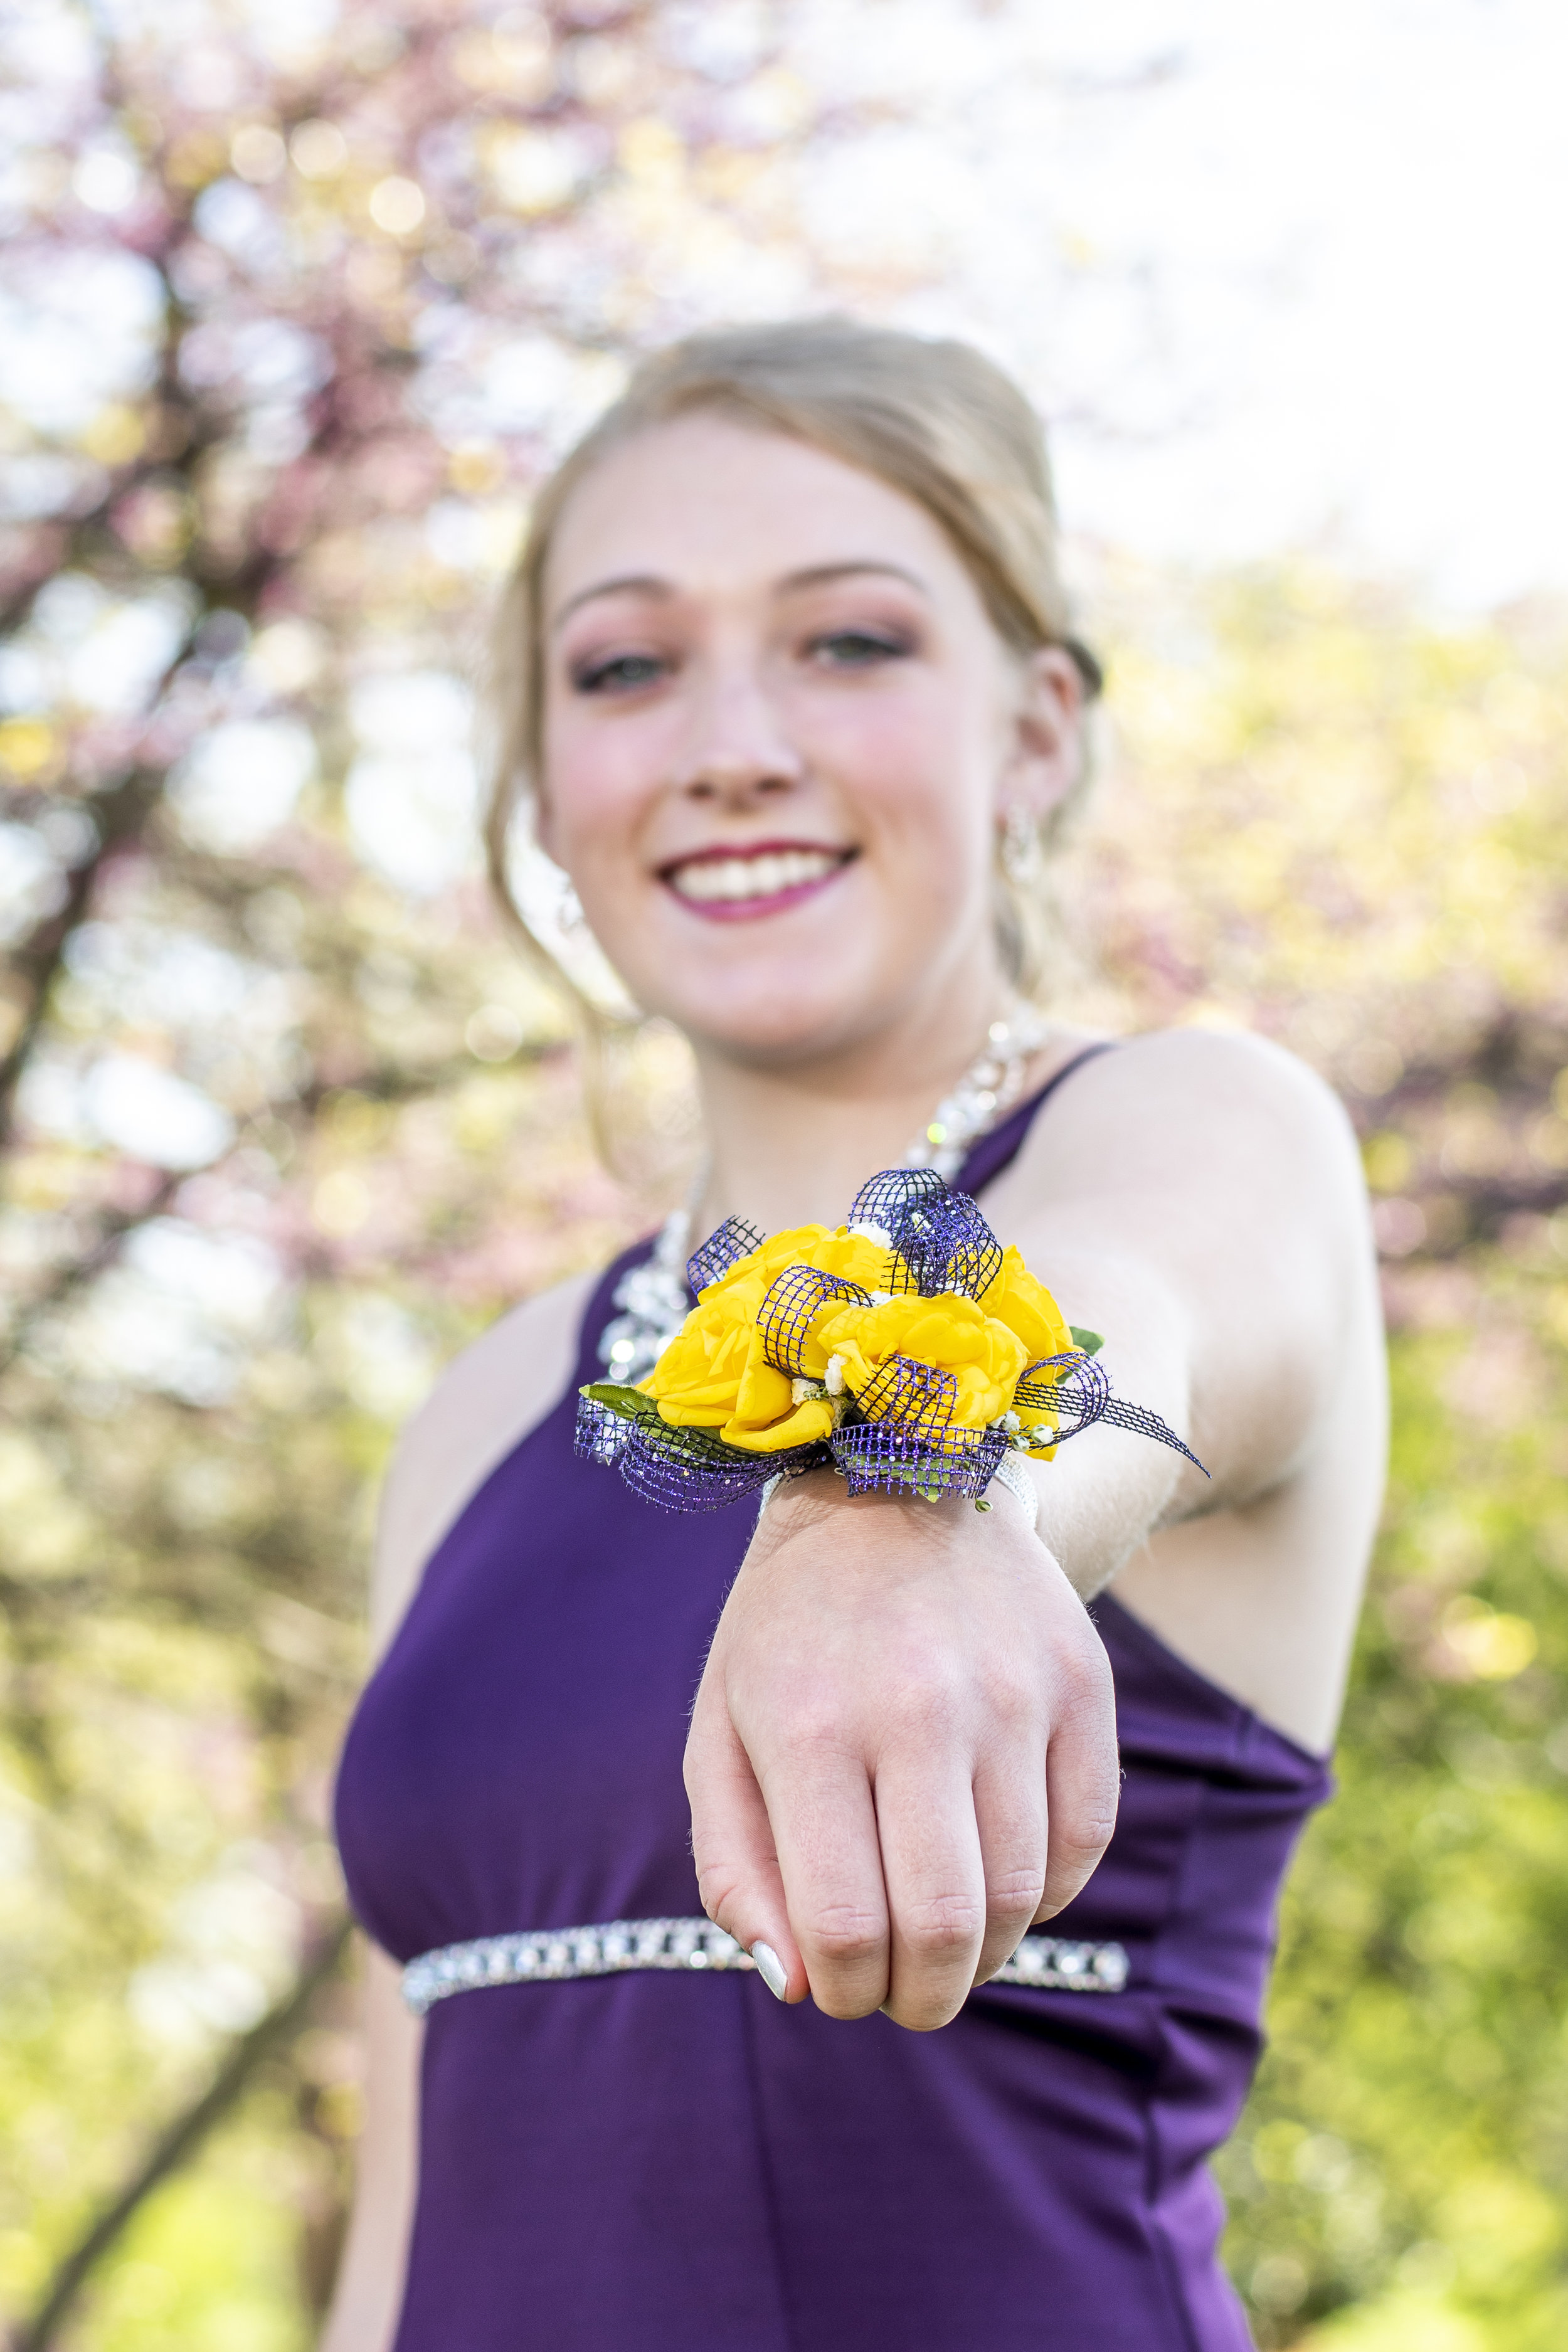 ethan-and-ally-prom-46-of-113_40127219300_o.jpg